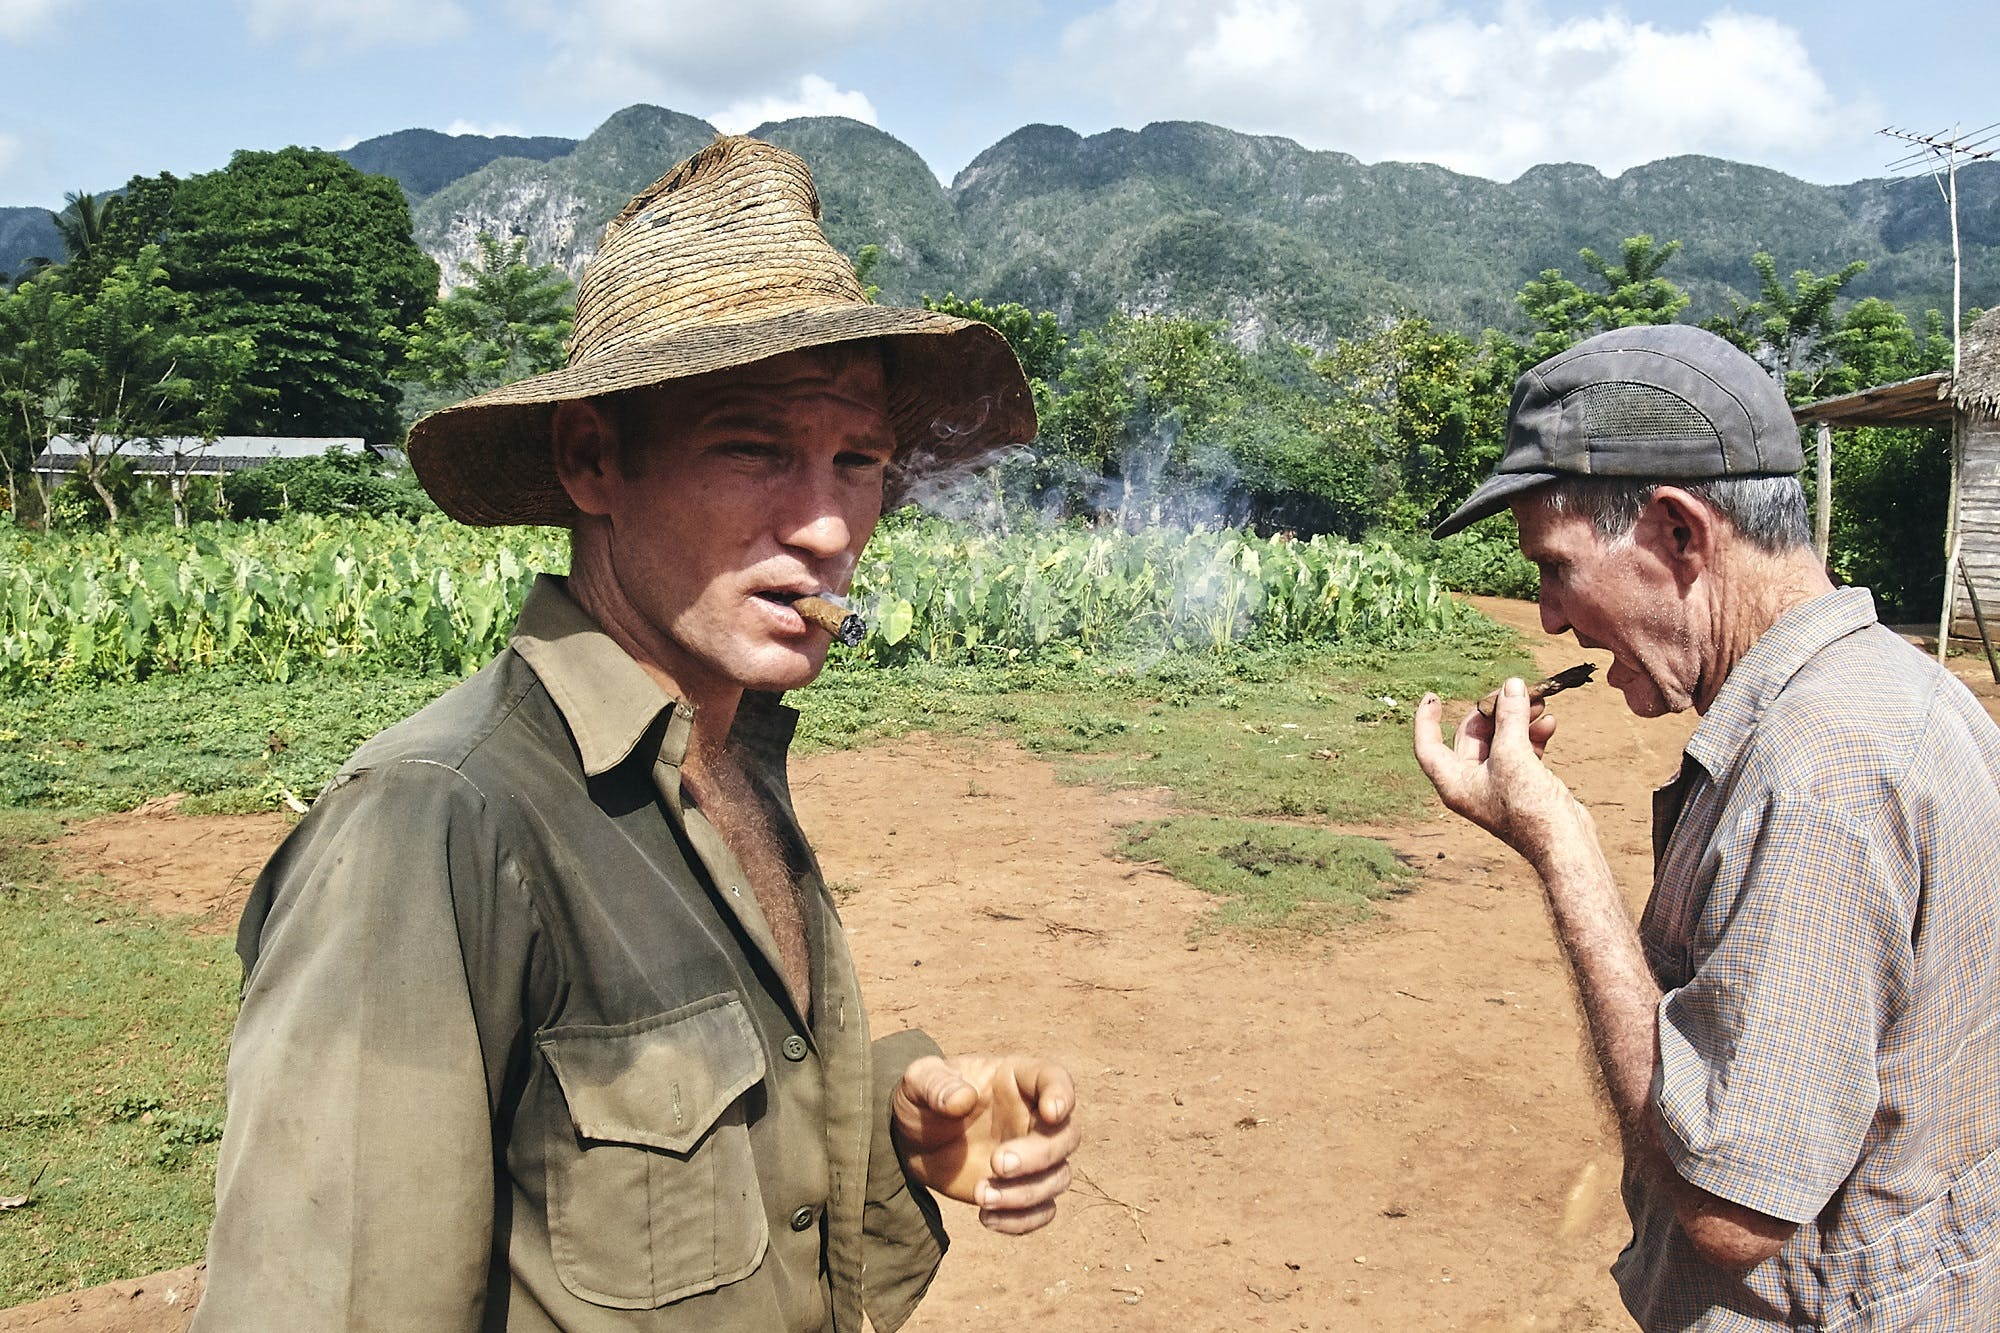 Cuban cigar makers sampling their product.